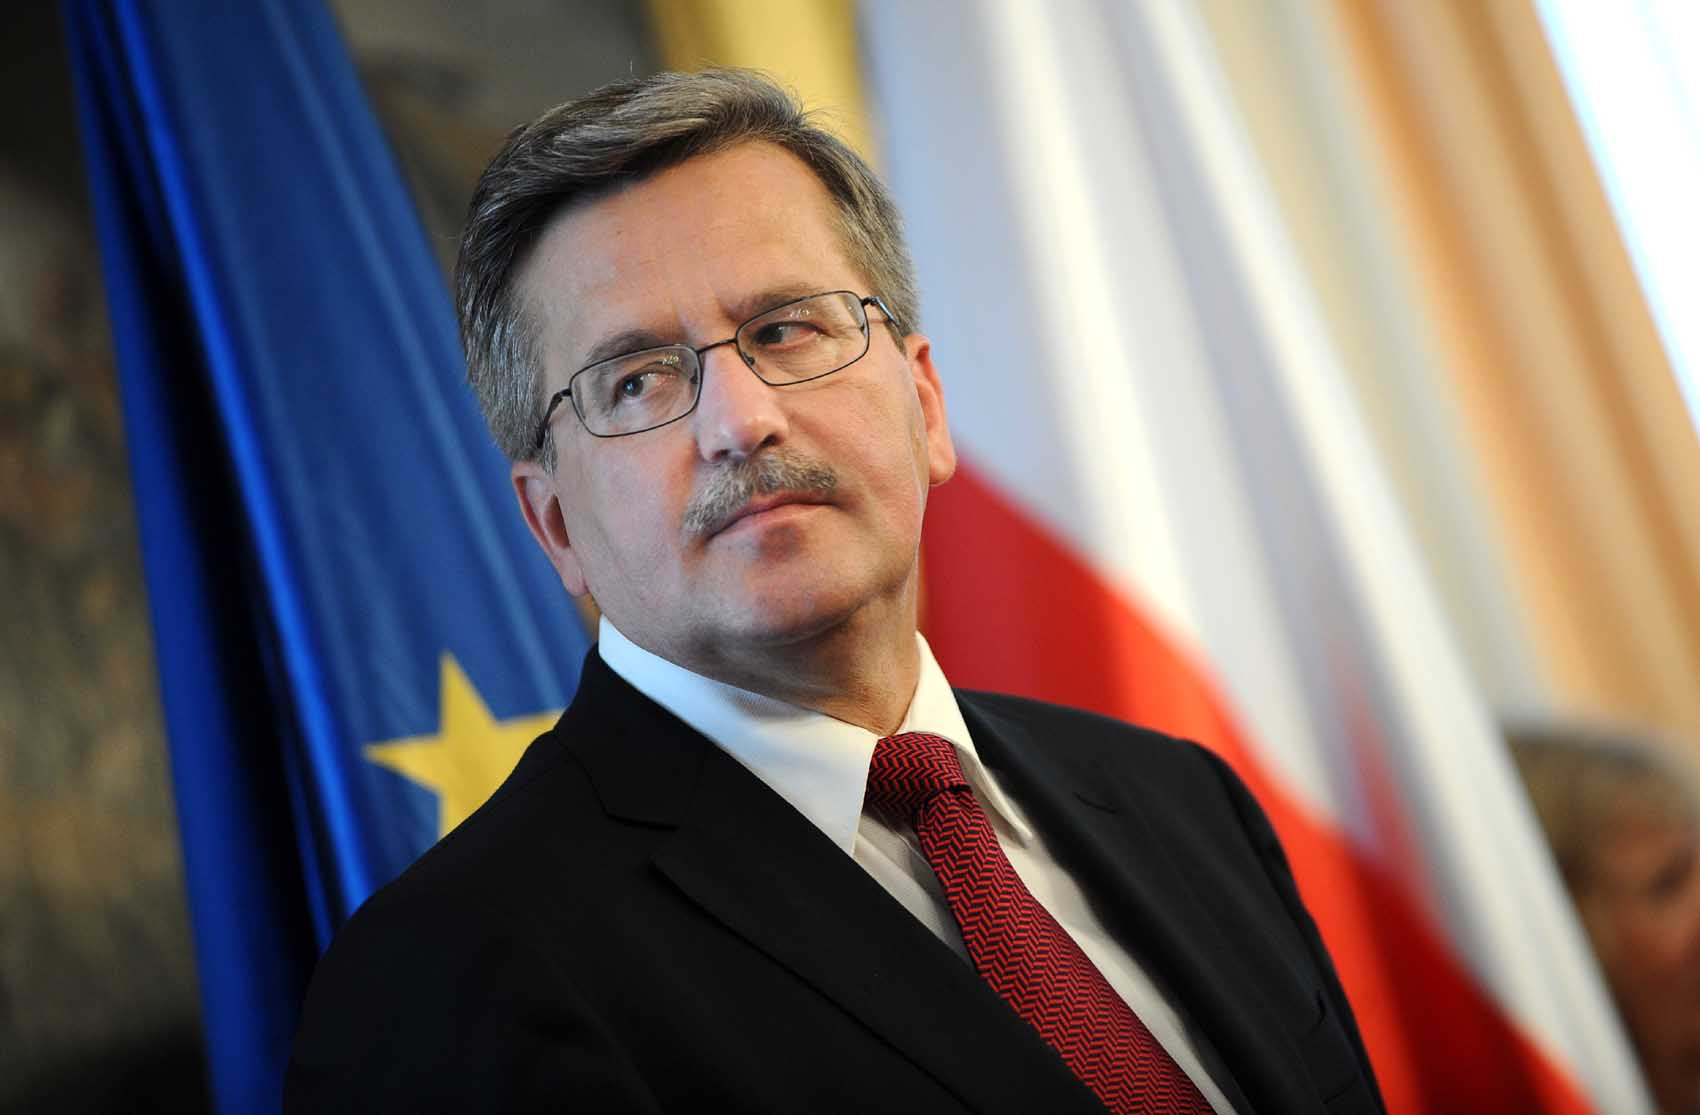 Komorowski to keep European door open for Ukraine